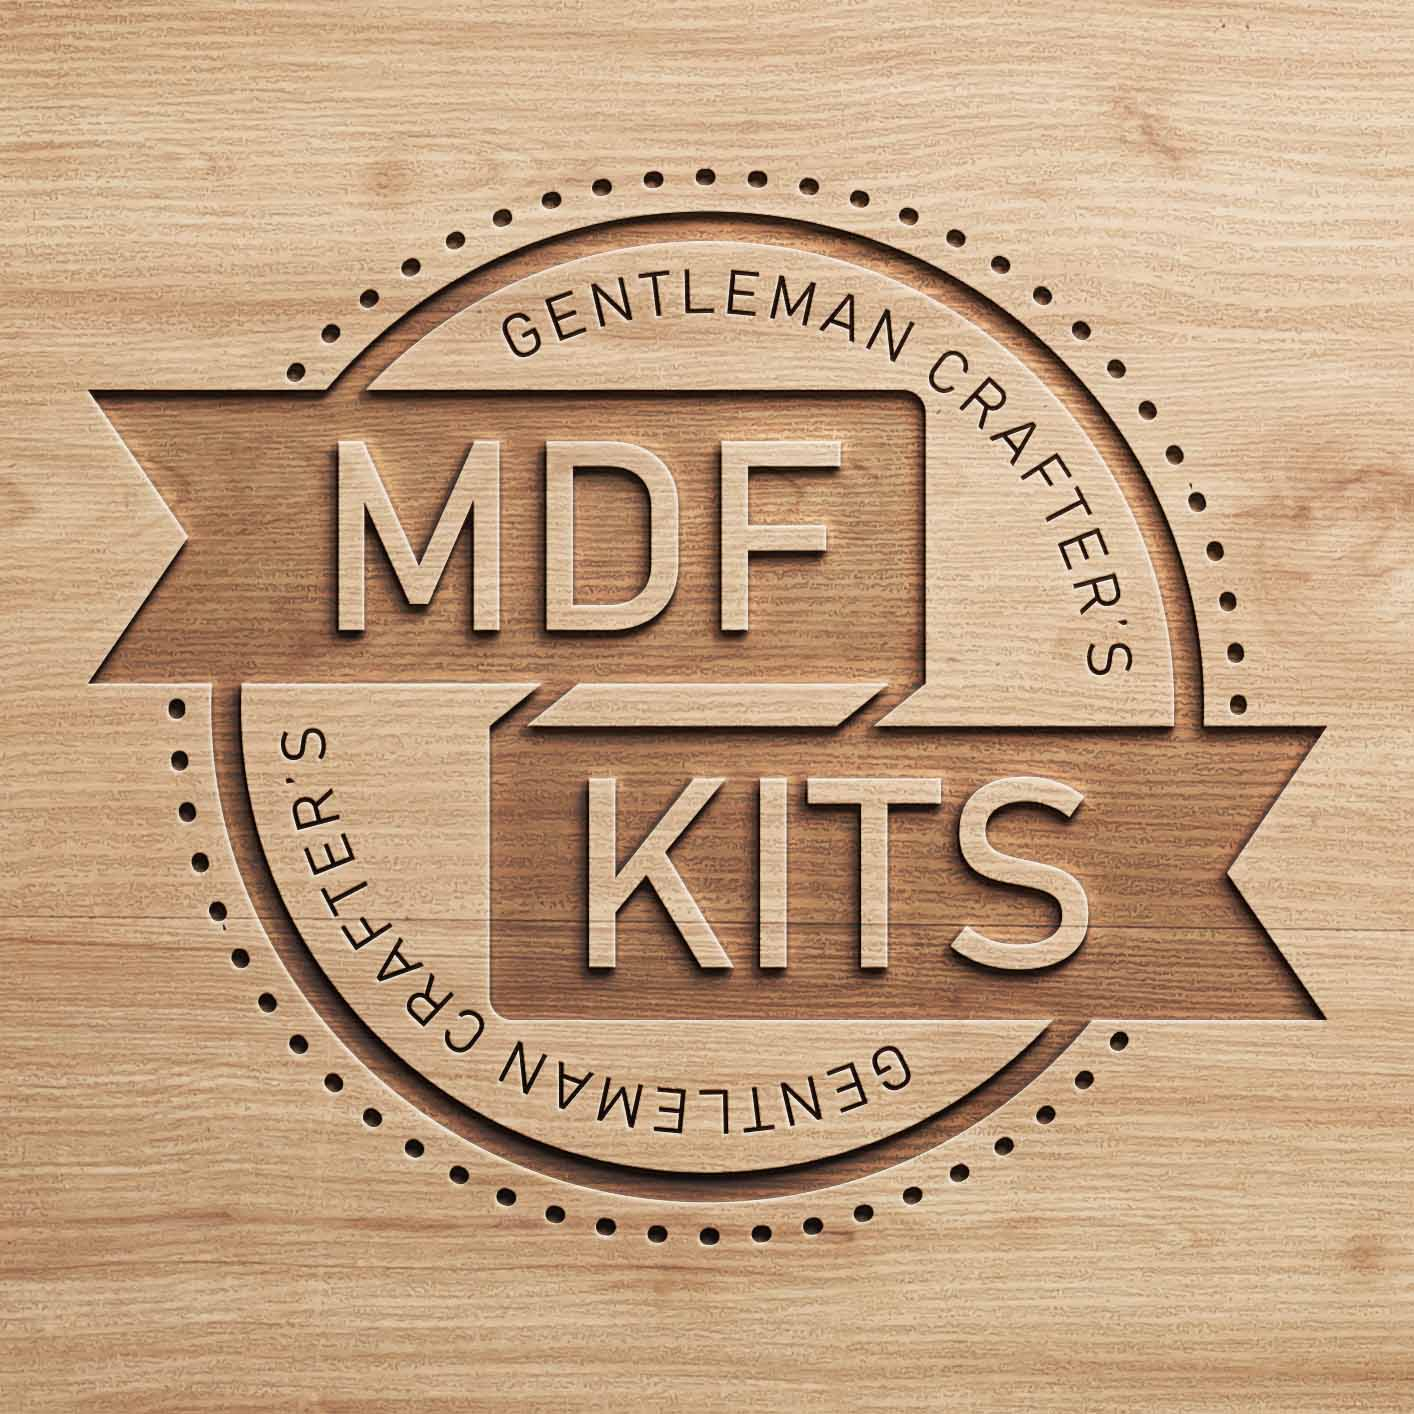 Gentleman Crafter MDF Kits